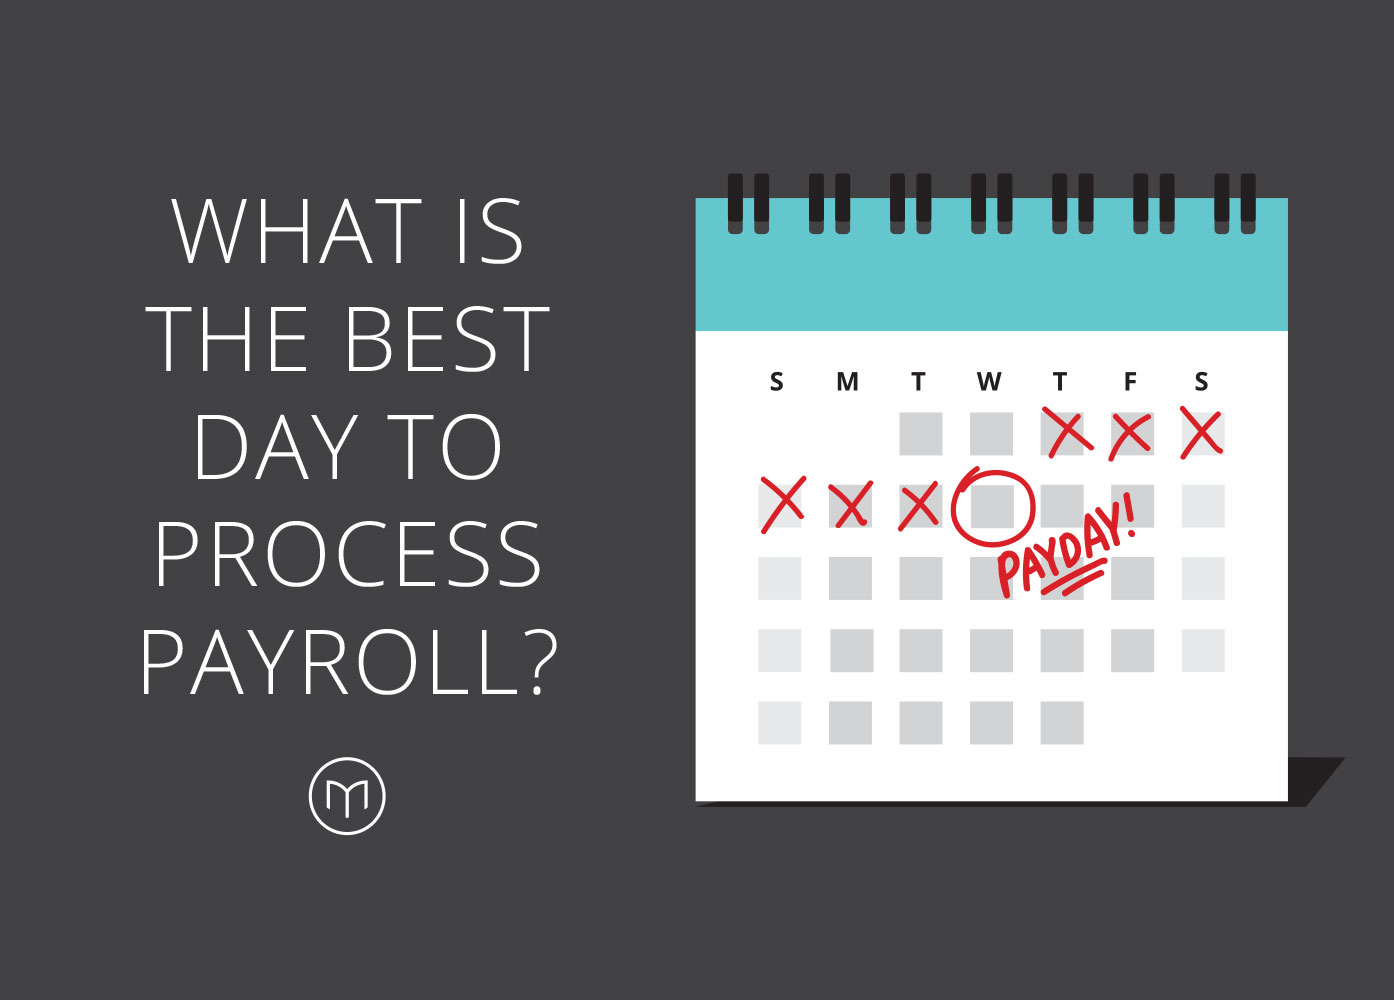 What is the best day to process payroll